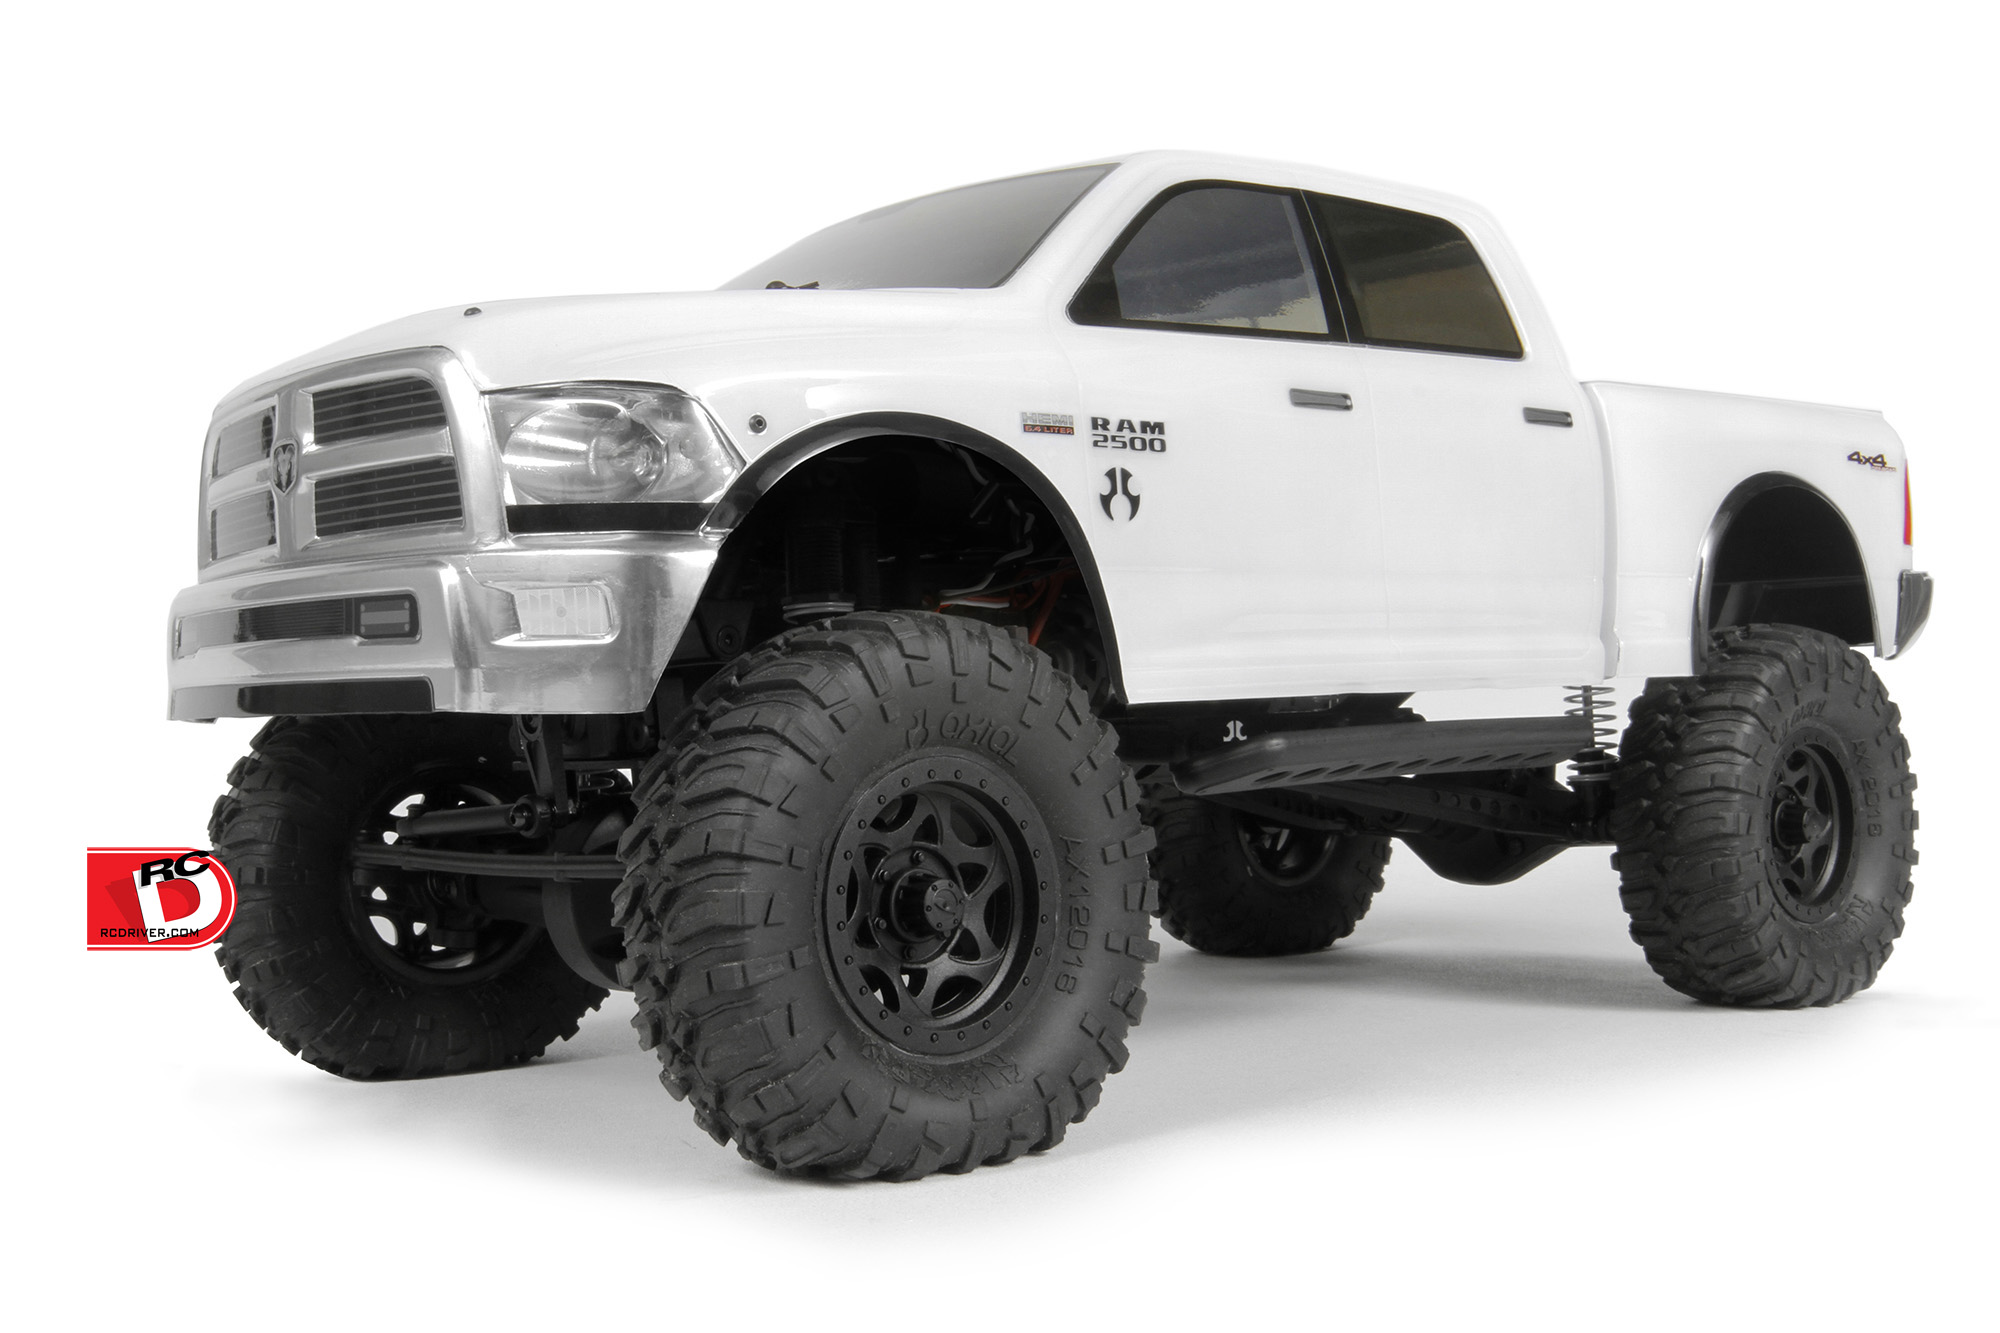 Axial Racing Ram 2500 Power Wagon Body